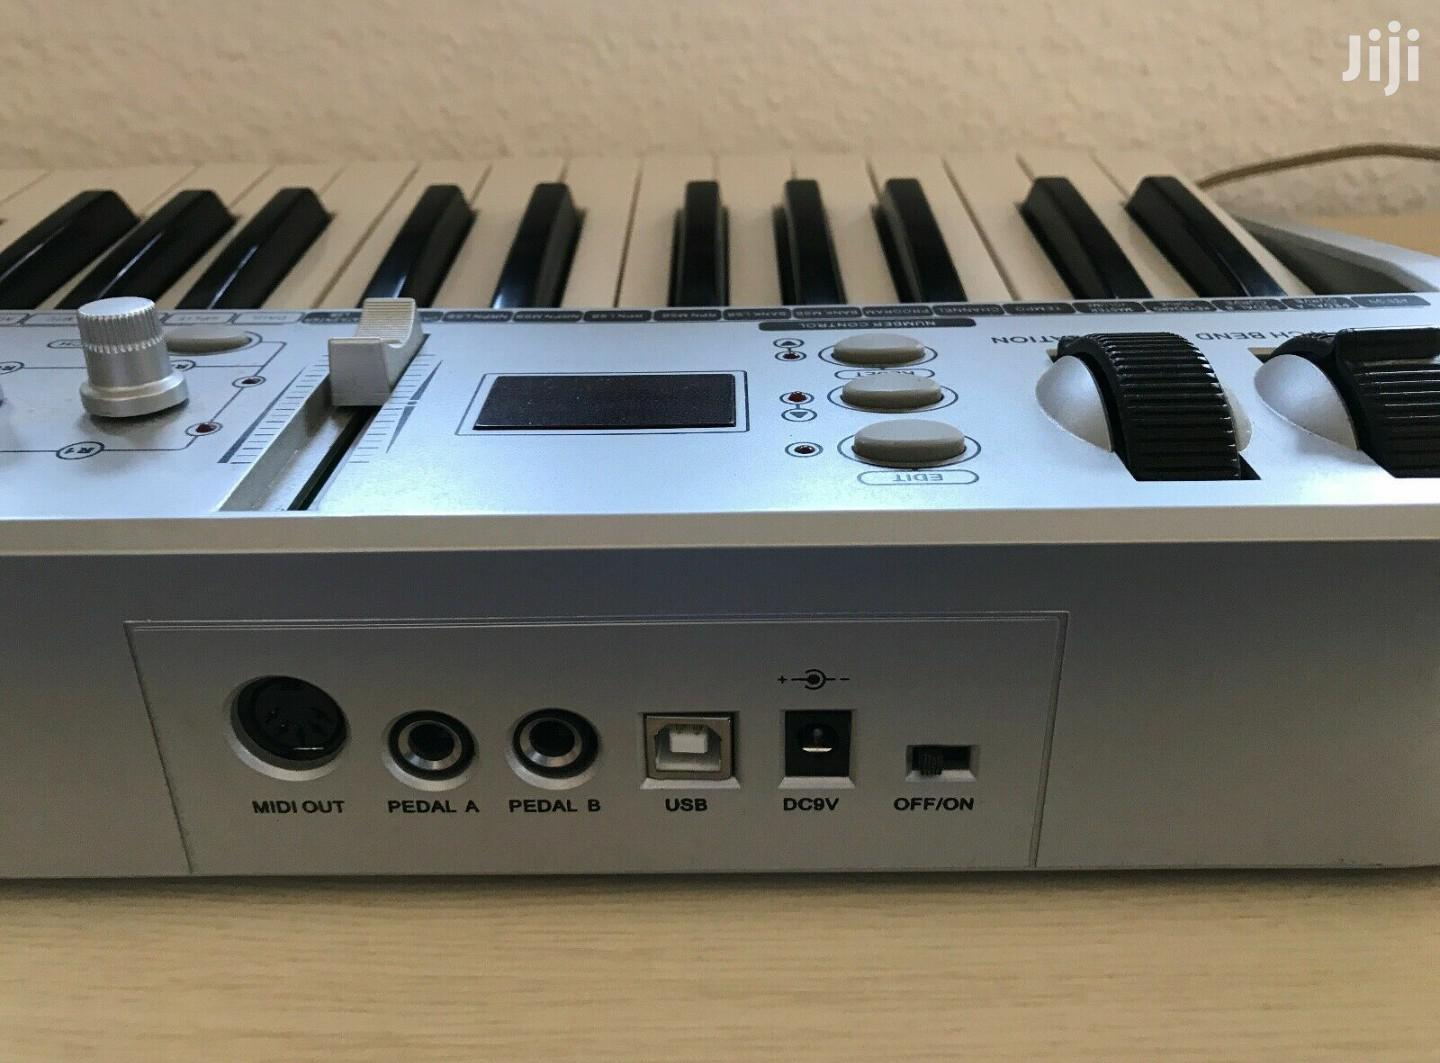 Fame USB Midi Keyboard 49 | Musical Instruments & Gear for sale in Alajo, Greater Accra, Ghana